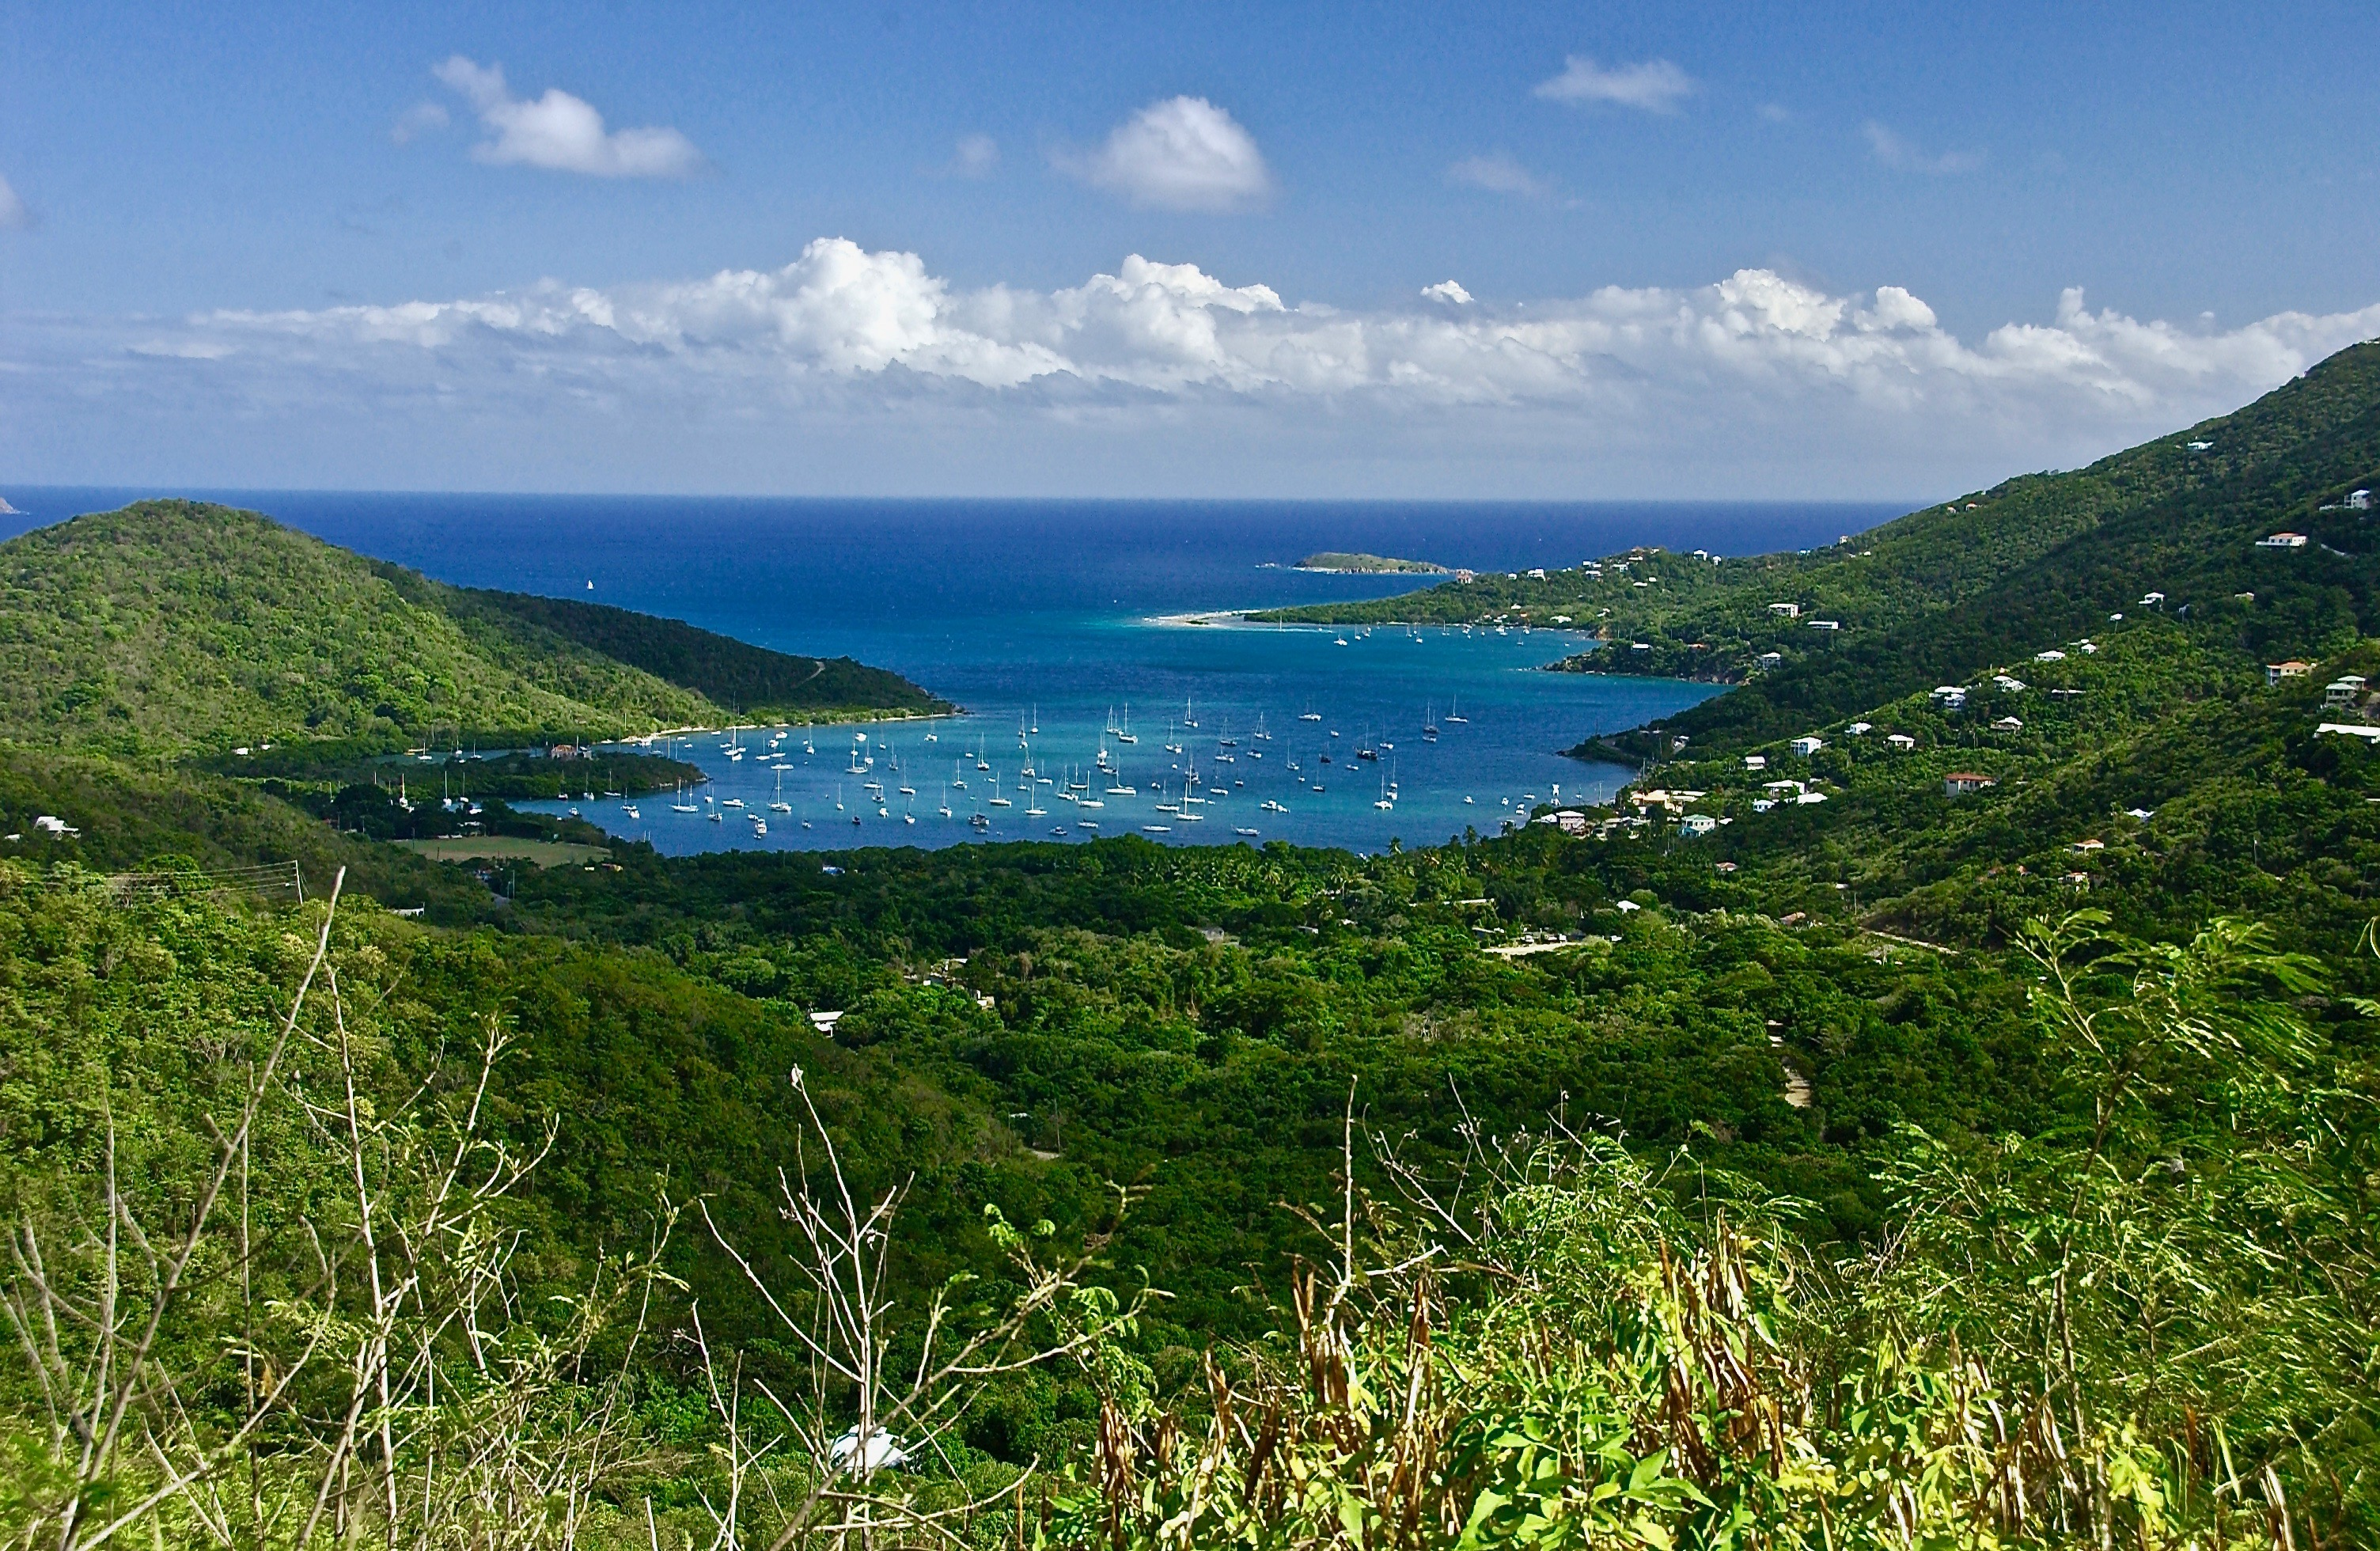 Coral Bay; Overlook, Harbor, Boat Landing, Business District, Fire Station; St. John, U.S. Virgin Islands, USA